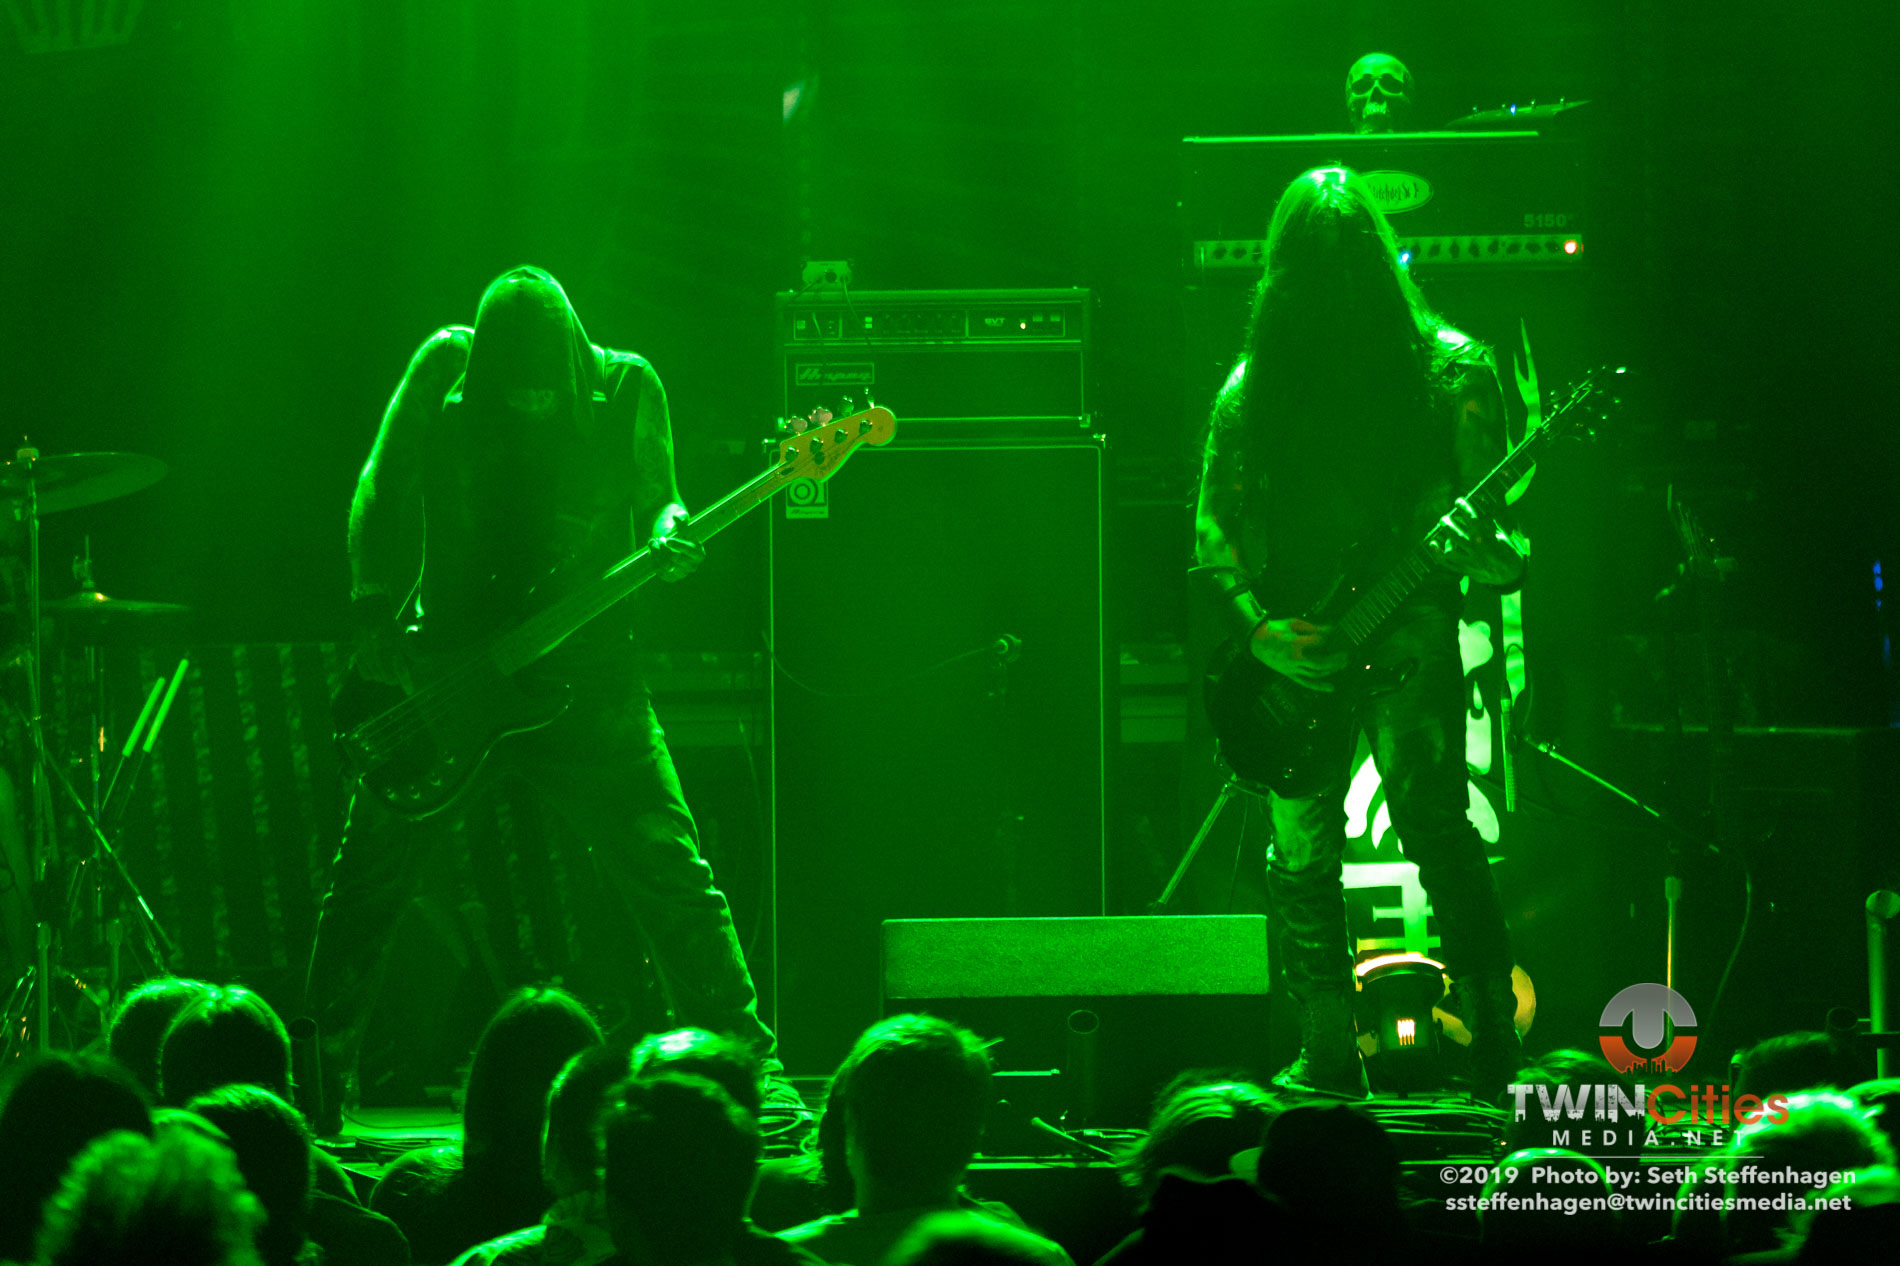 August 9, 2019 - Minneapolis, Minnesota, United States - Witchden live in concert at First Avenue opening for Gojira.  (Photo by Seth Steffenhagen/Steffenhagen Photography)